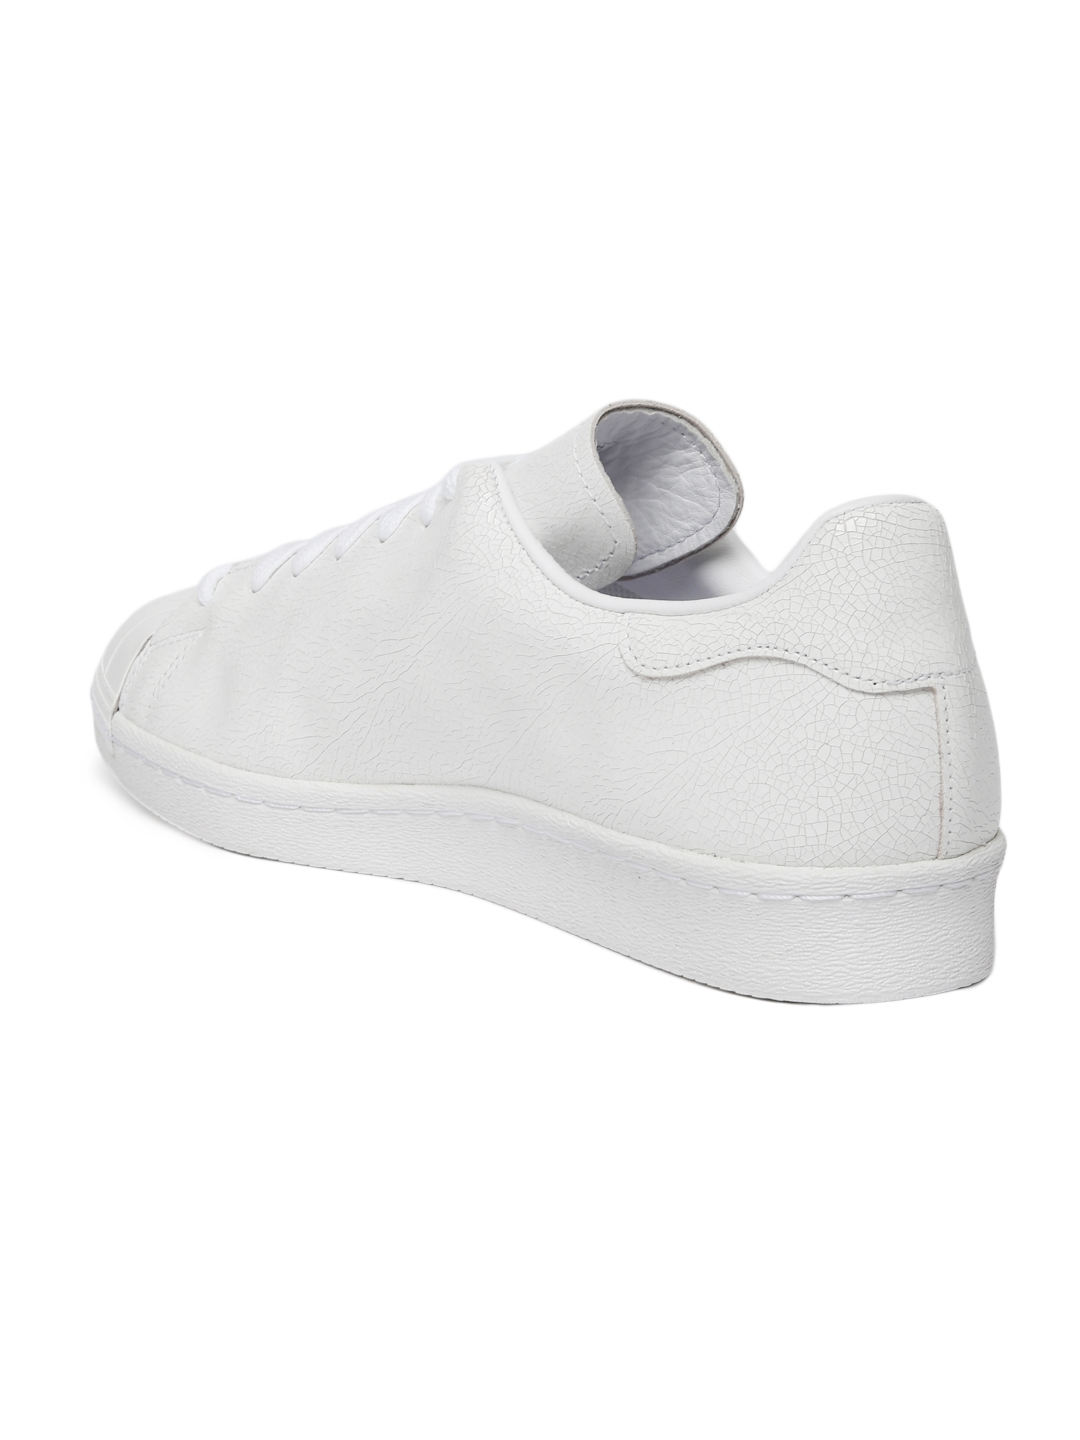 hot sale online 54272 e3a74 ADIDAS Originals Men White SUPERSTAR 80S CLEAN Leather Sneakers